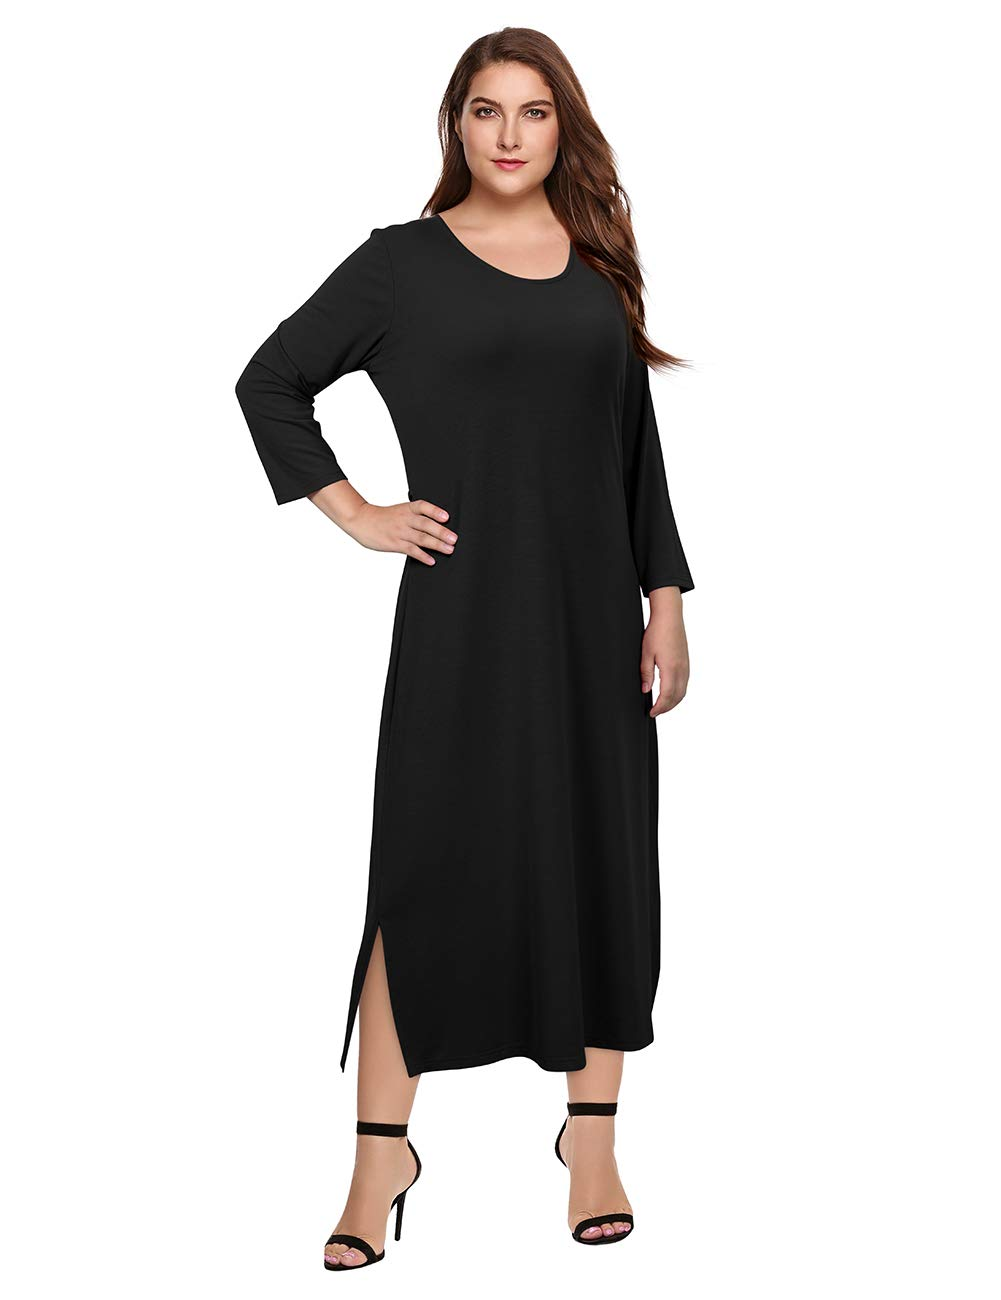 AMZ PLUS Women's Pluz Size 3/4 Sleeves Fitted Casual Maxi Dresses with self-tie to Back Black 3XL